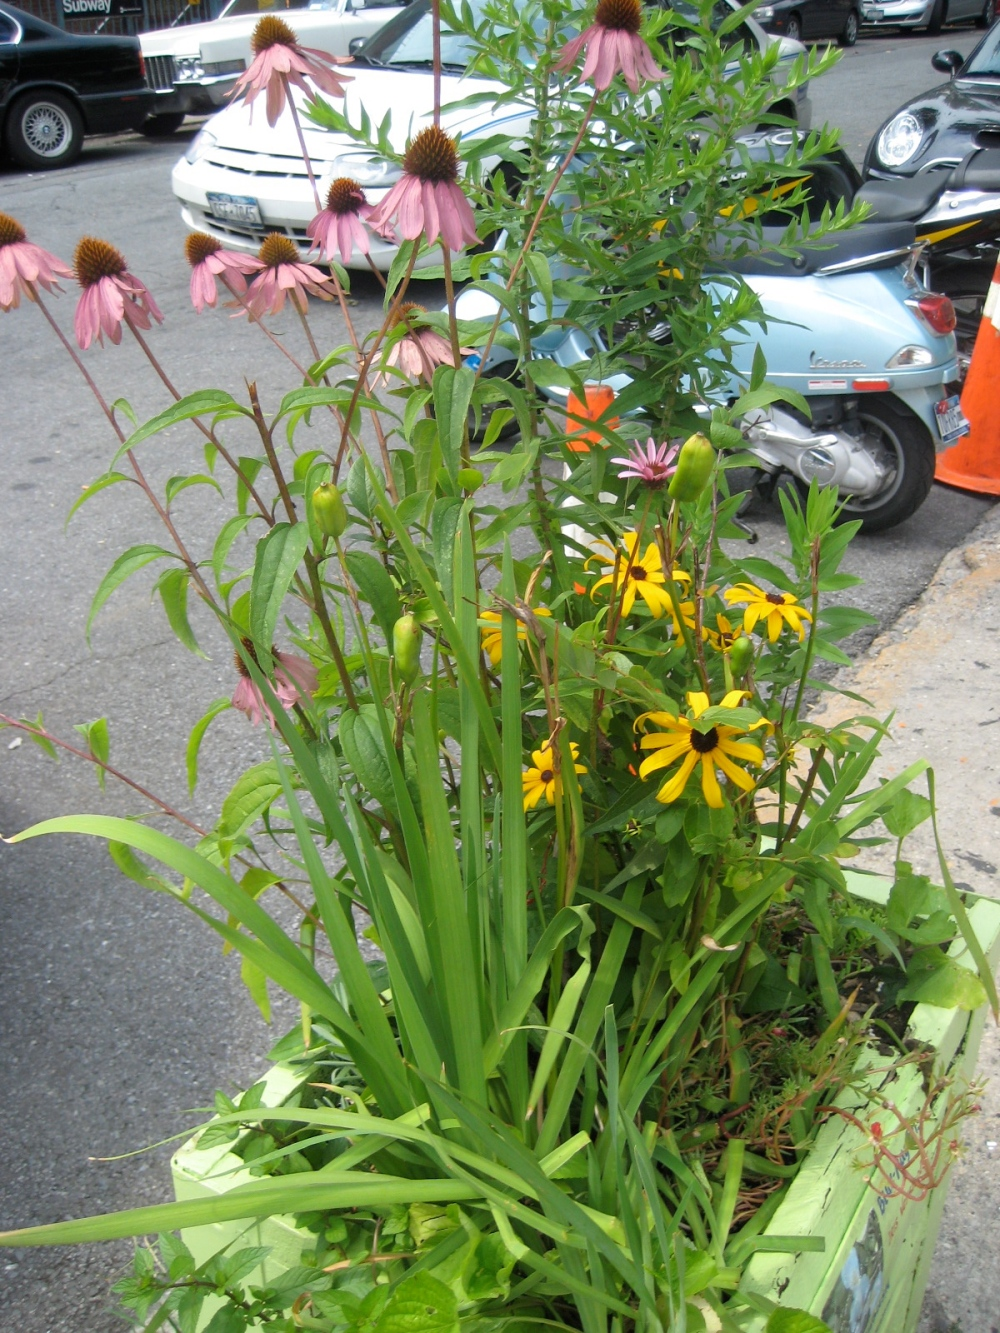 Native PLants at Habana Outpost